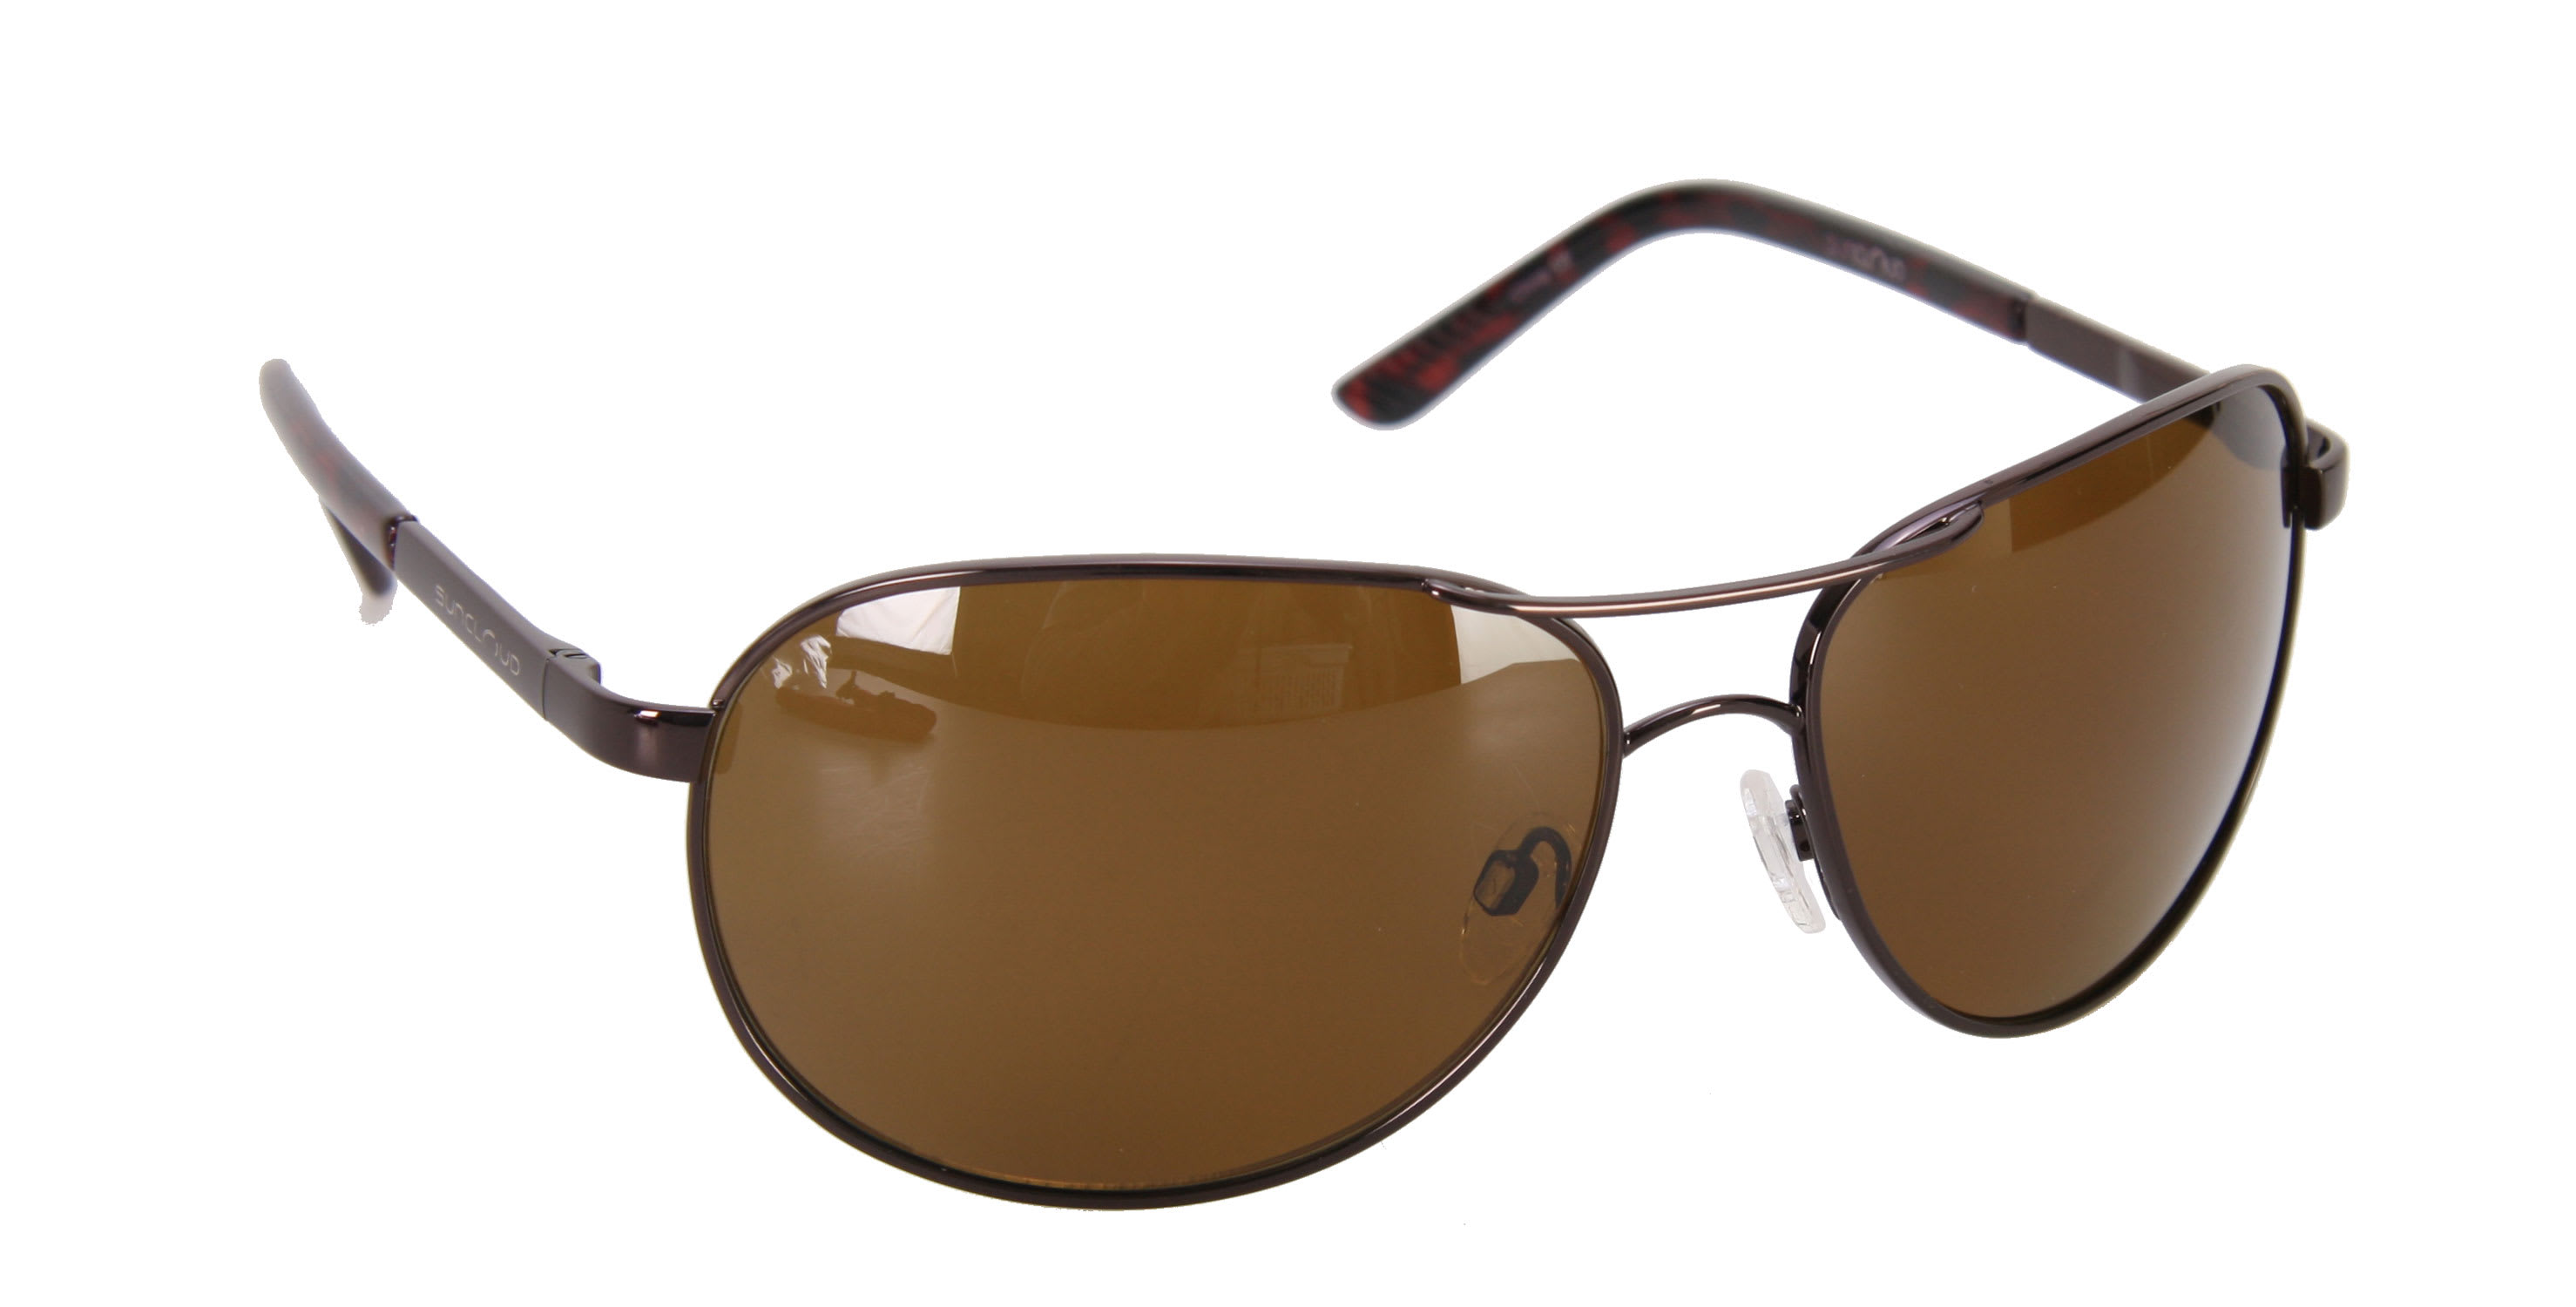 6f0543ec13a5 Red Lense Sunglasses For Men